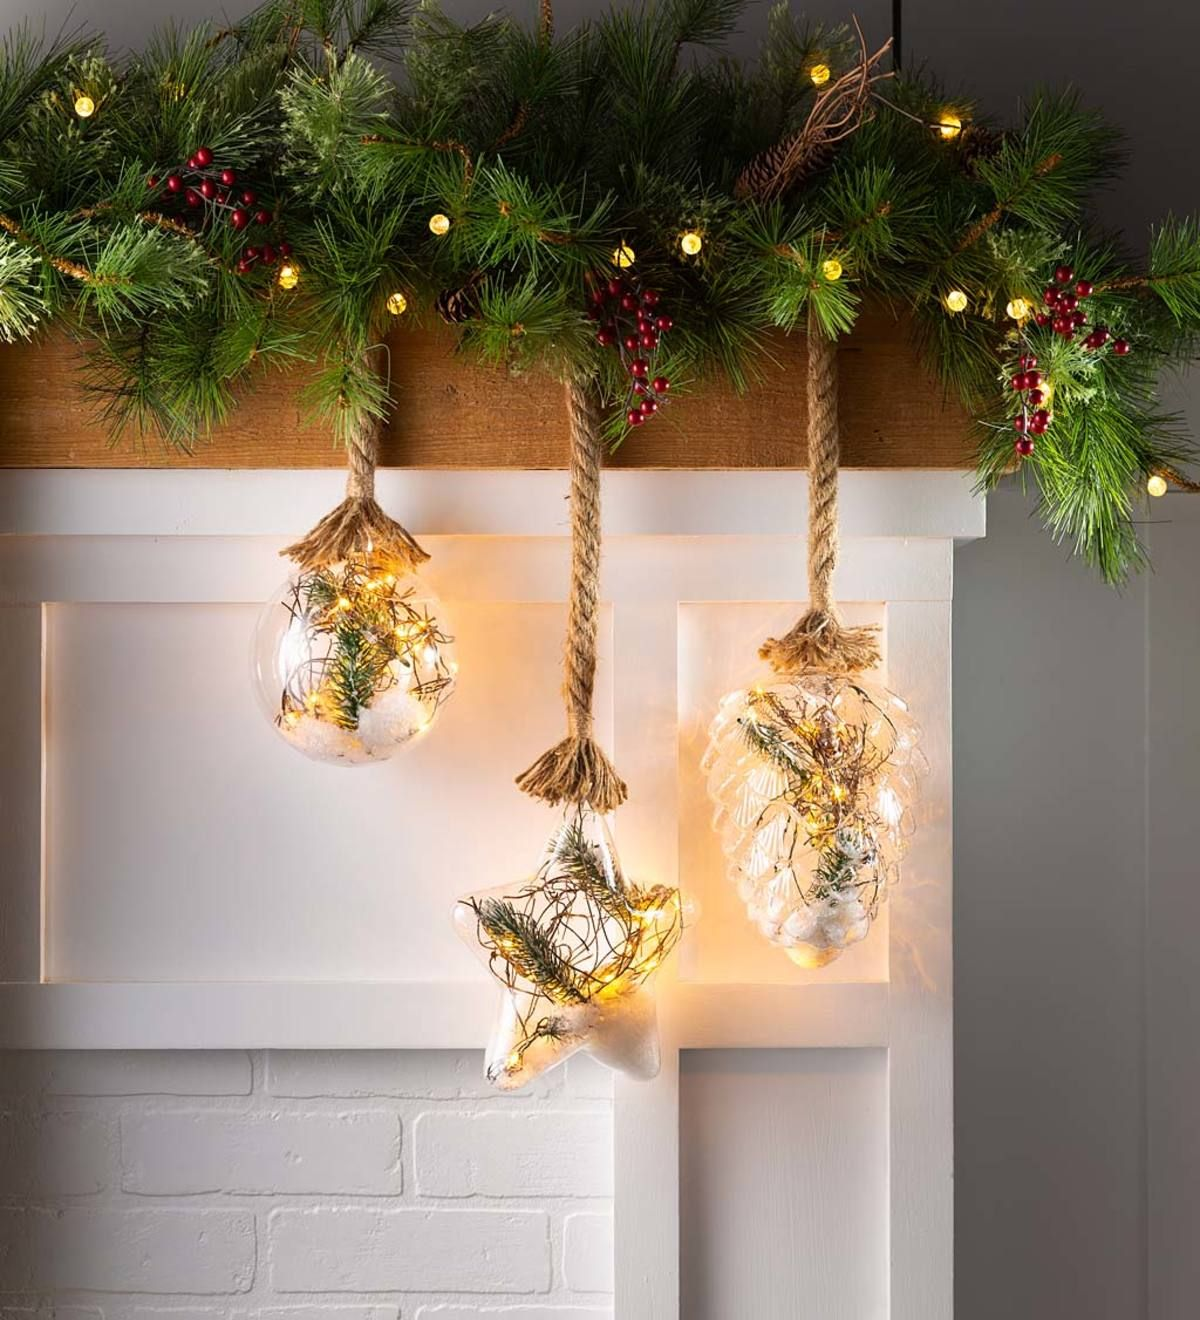 Indoor Outdoor Oversized Lighted Glass Ornament With Greenery Glass Ornaments Christmas Window Decorations Glass Christmas Ornaments